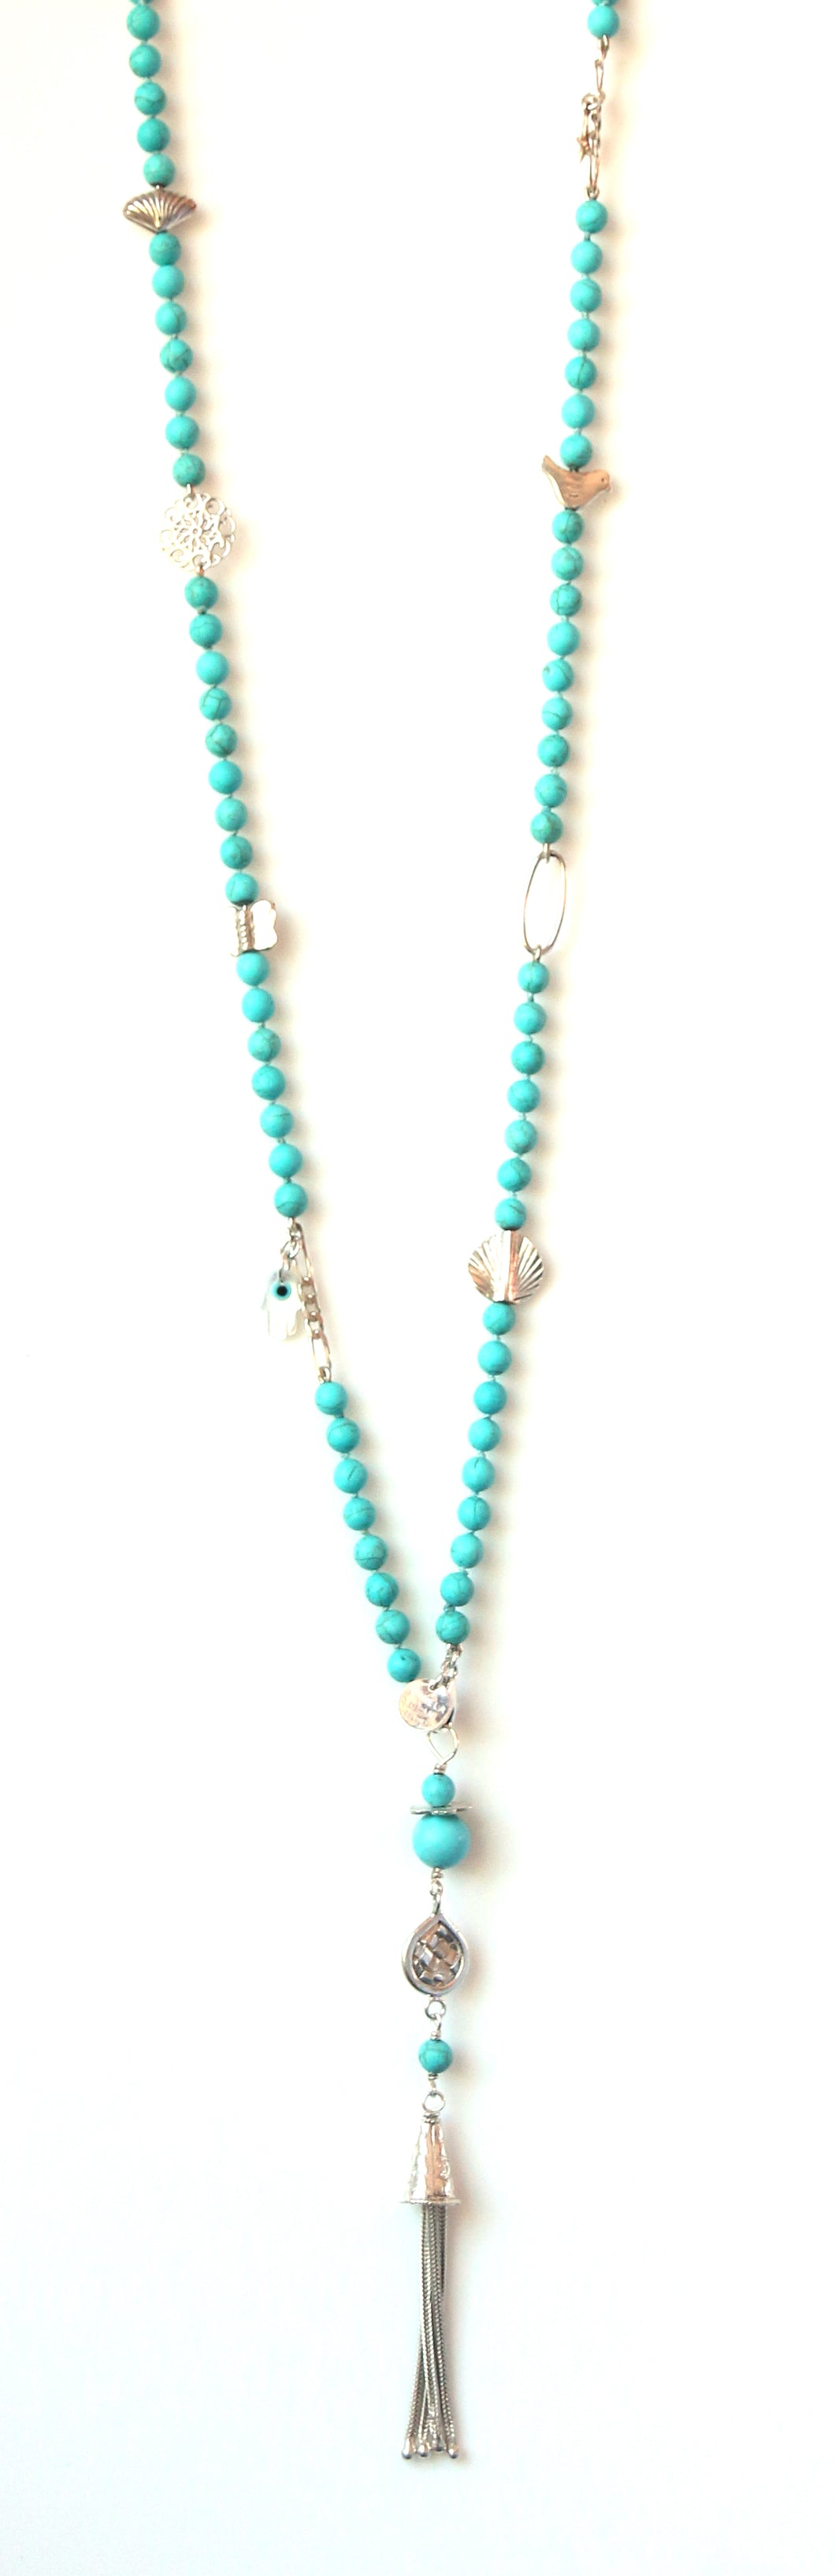 Australian Handmade Long Tassel Necklace with Howlite and Sterling Silver Charms